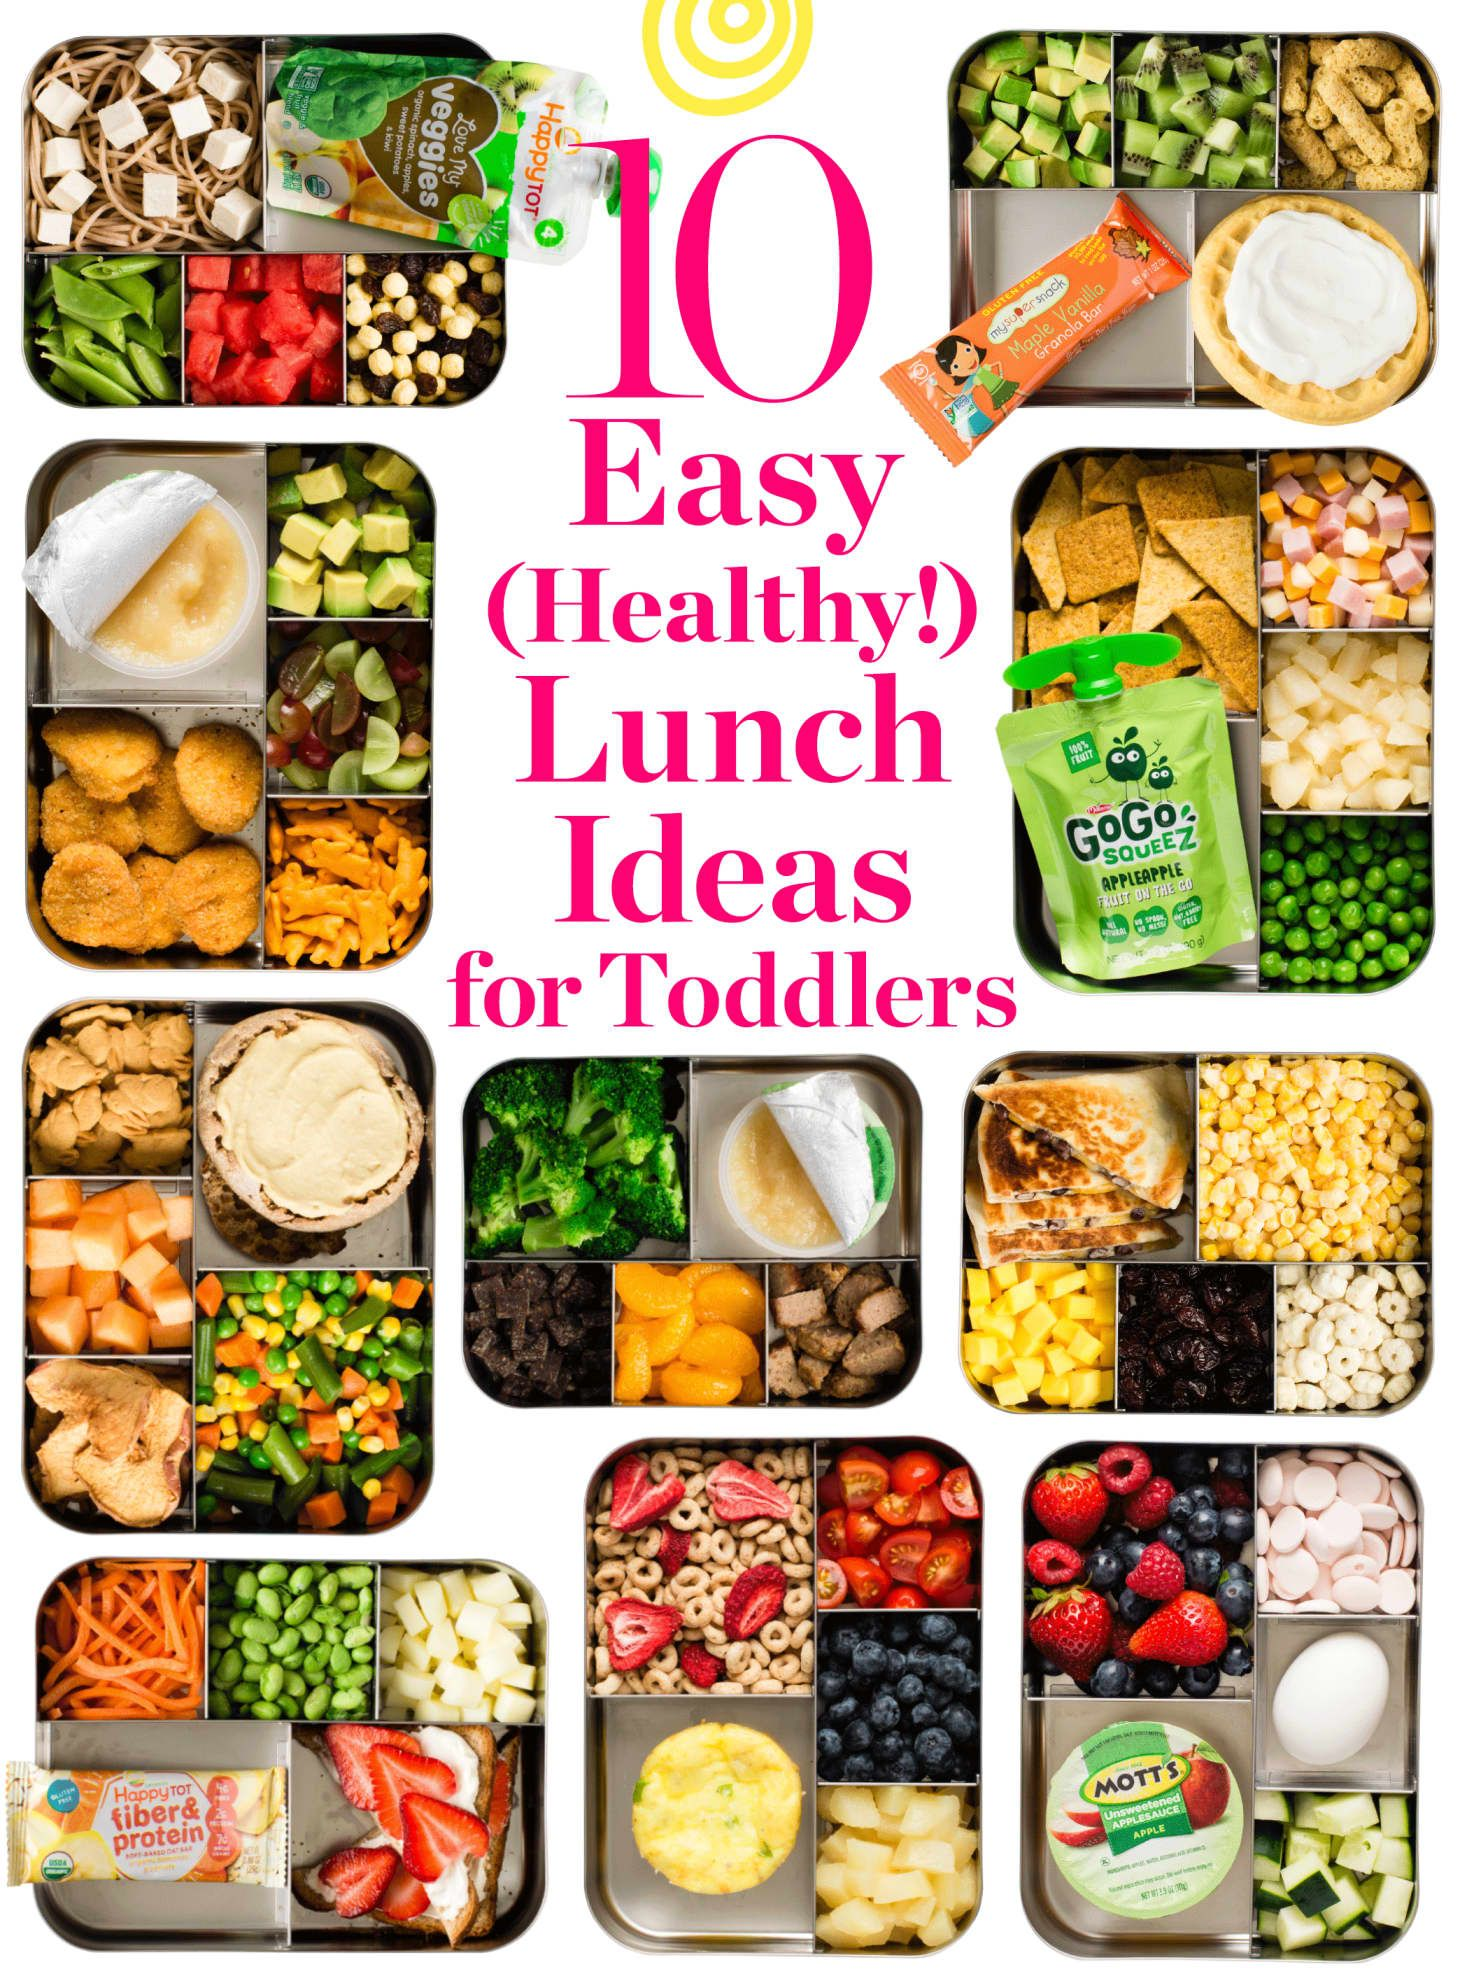 10 Super Easy (and Healthy!) Lunch Box Ideas for Toddlers & Preschoolers images